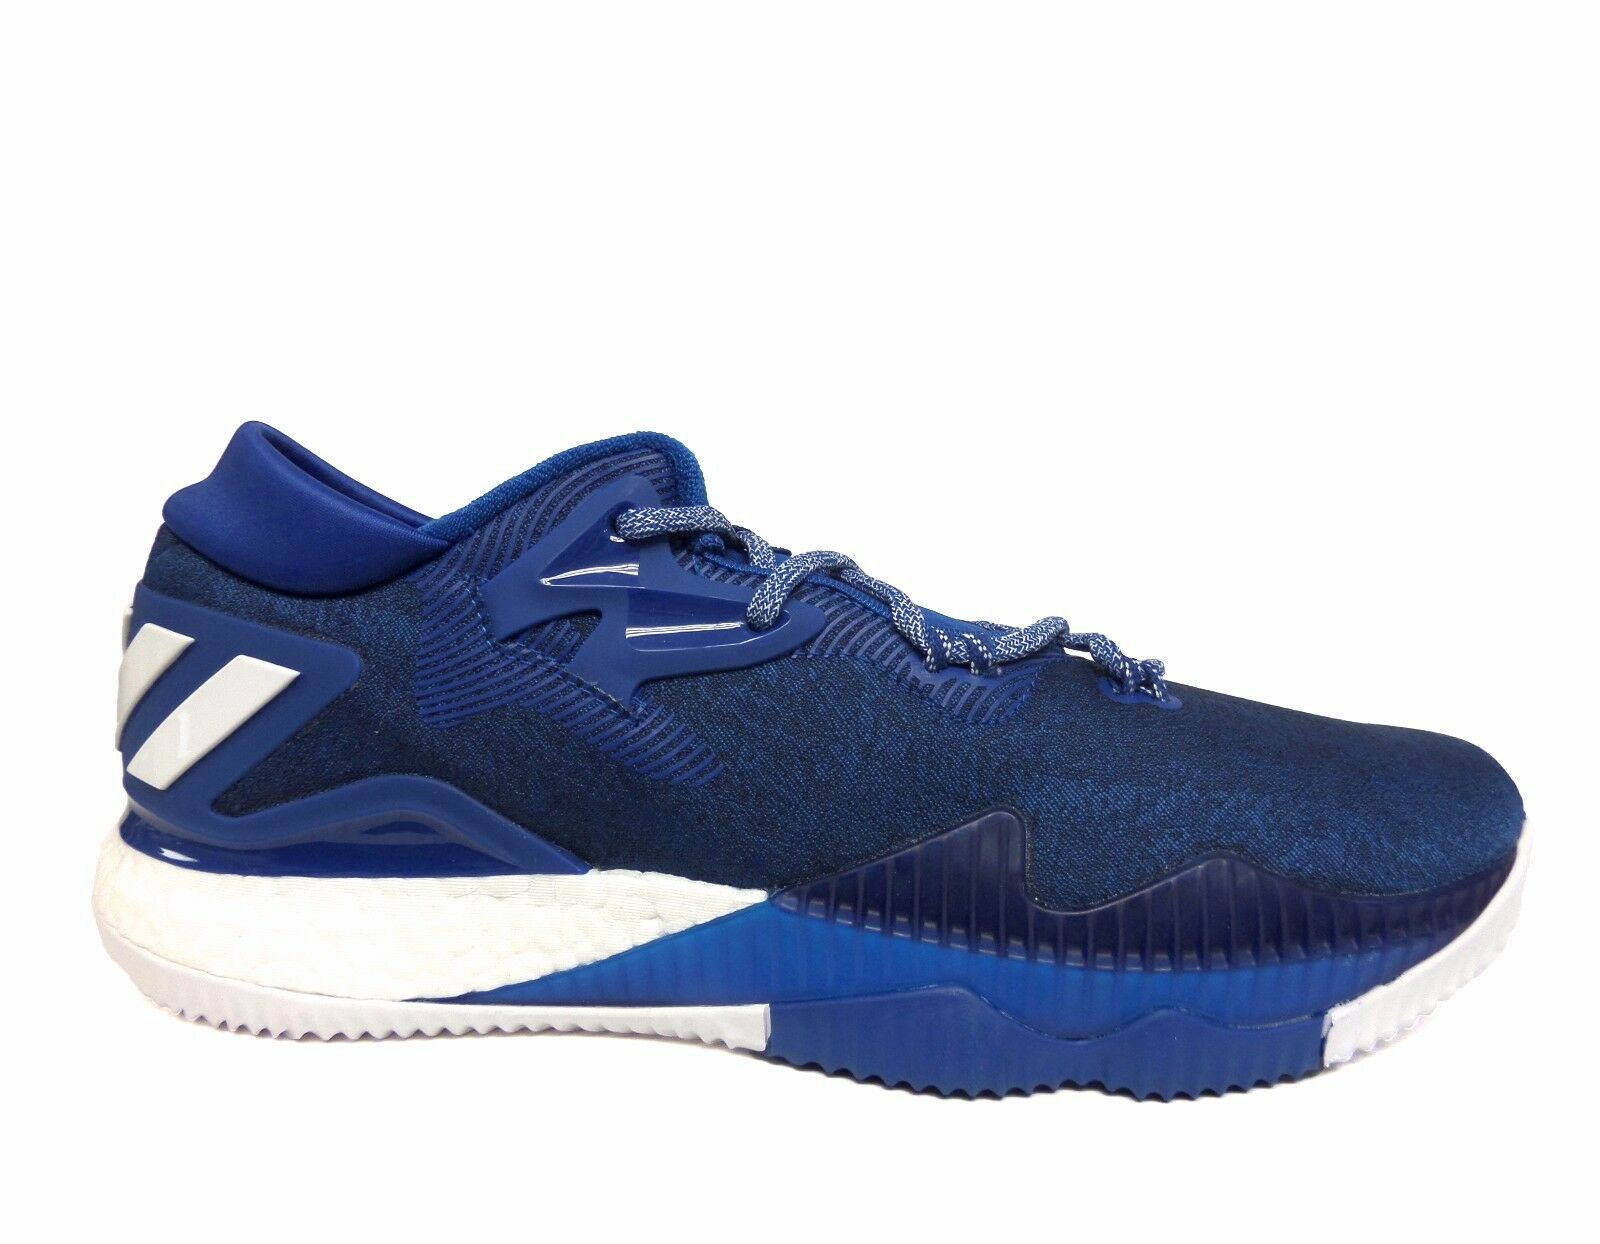 Adidas Men's SM CRAZYLIGHT BOOST LOW 2018 OLYMPICS Shoes Blue/White B42808 b